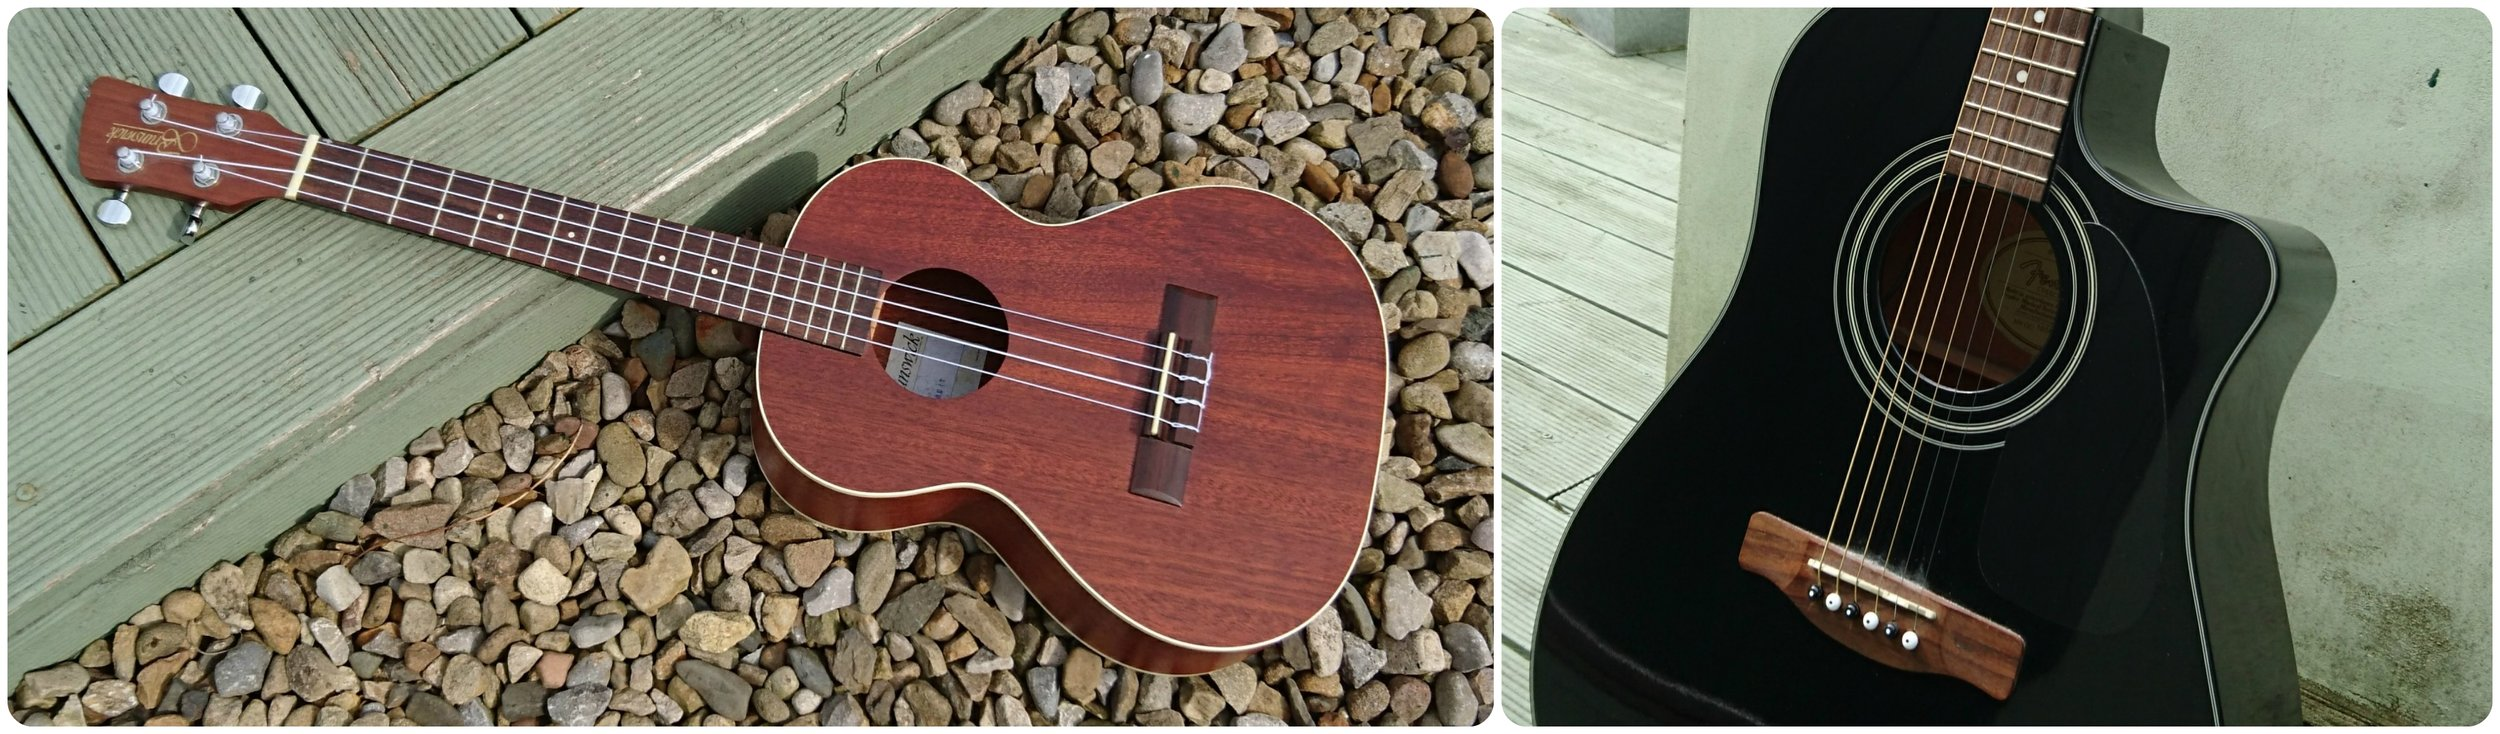 Ukulele and guitar instrument hire from Sid Wright sidwright.co.uk